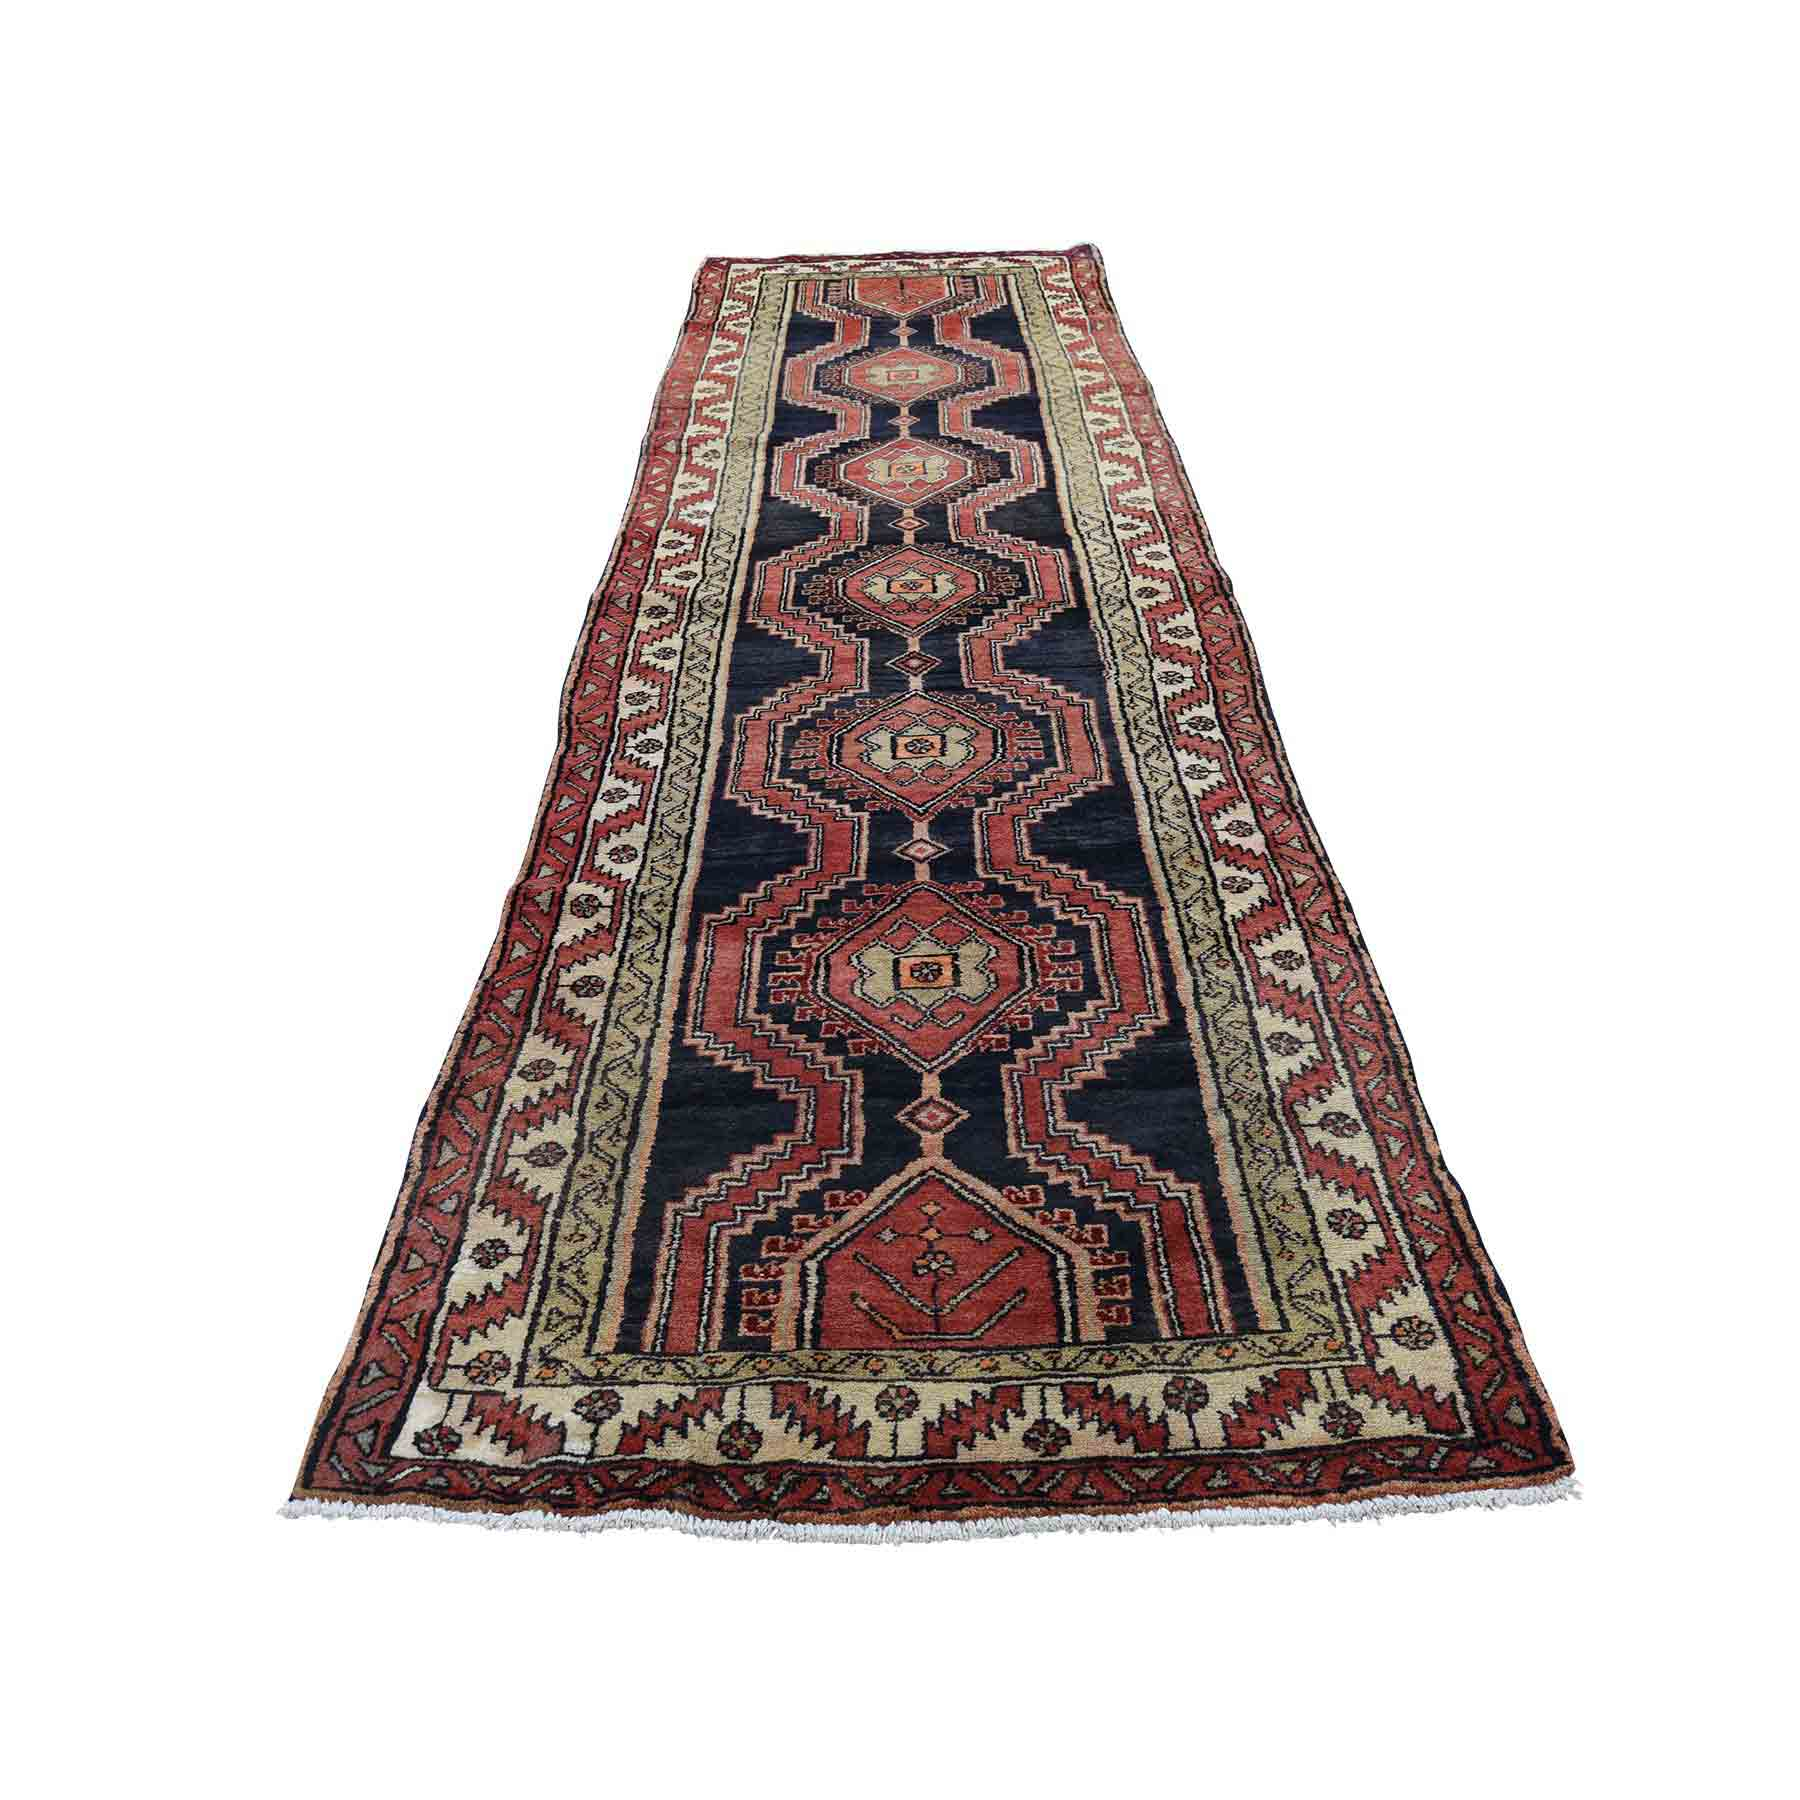 Semi Antique Persian Tribal Pure Wool Good Condition Hand-Knotted Oriental